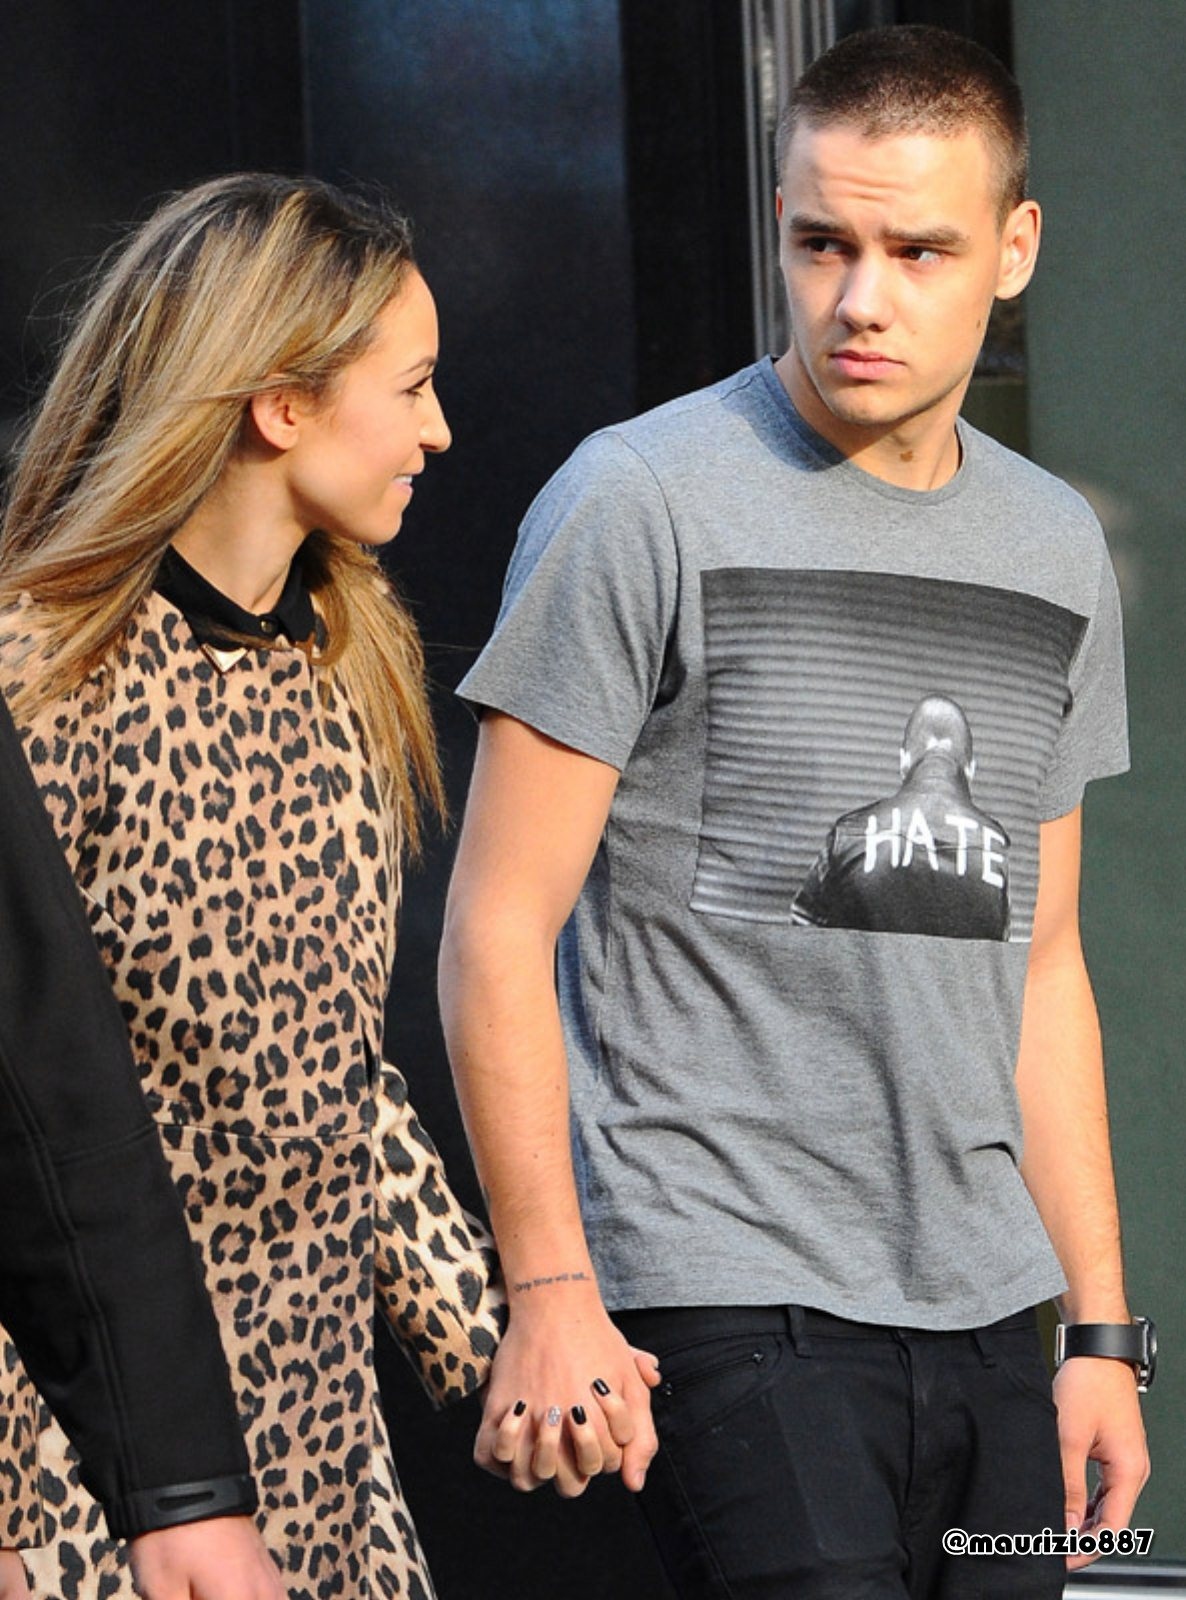 Liam Payne & Danielle Peazer NY, 2012 - One Direction ...